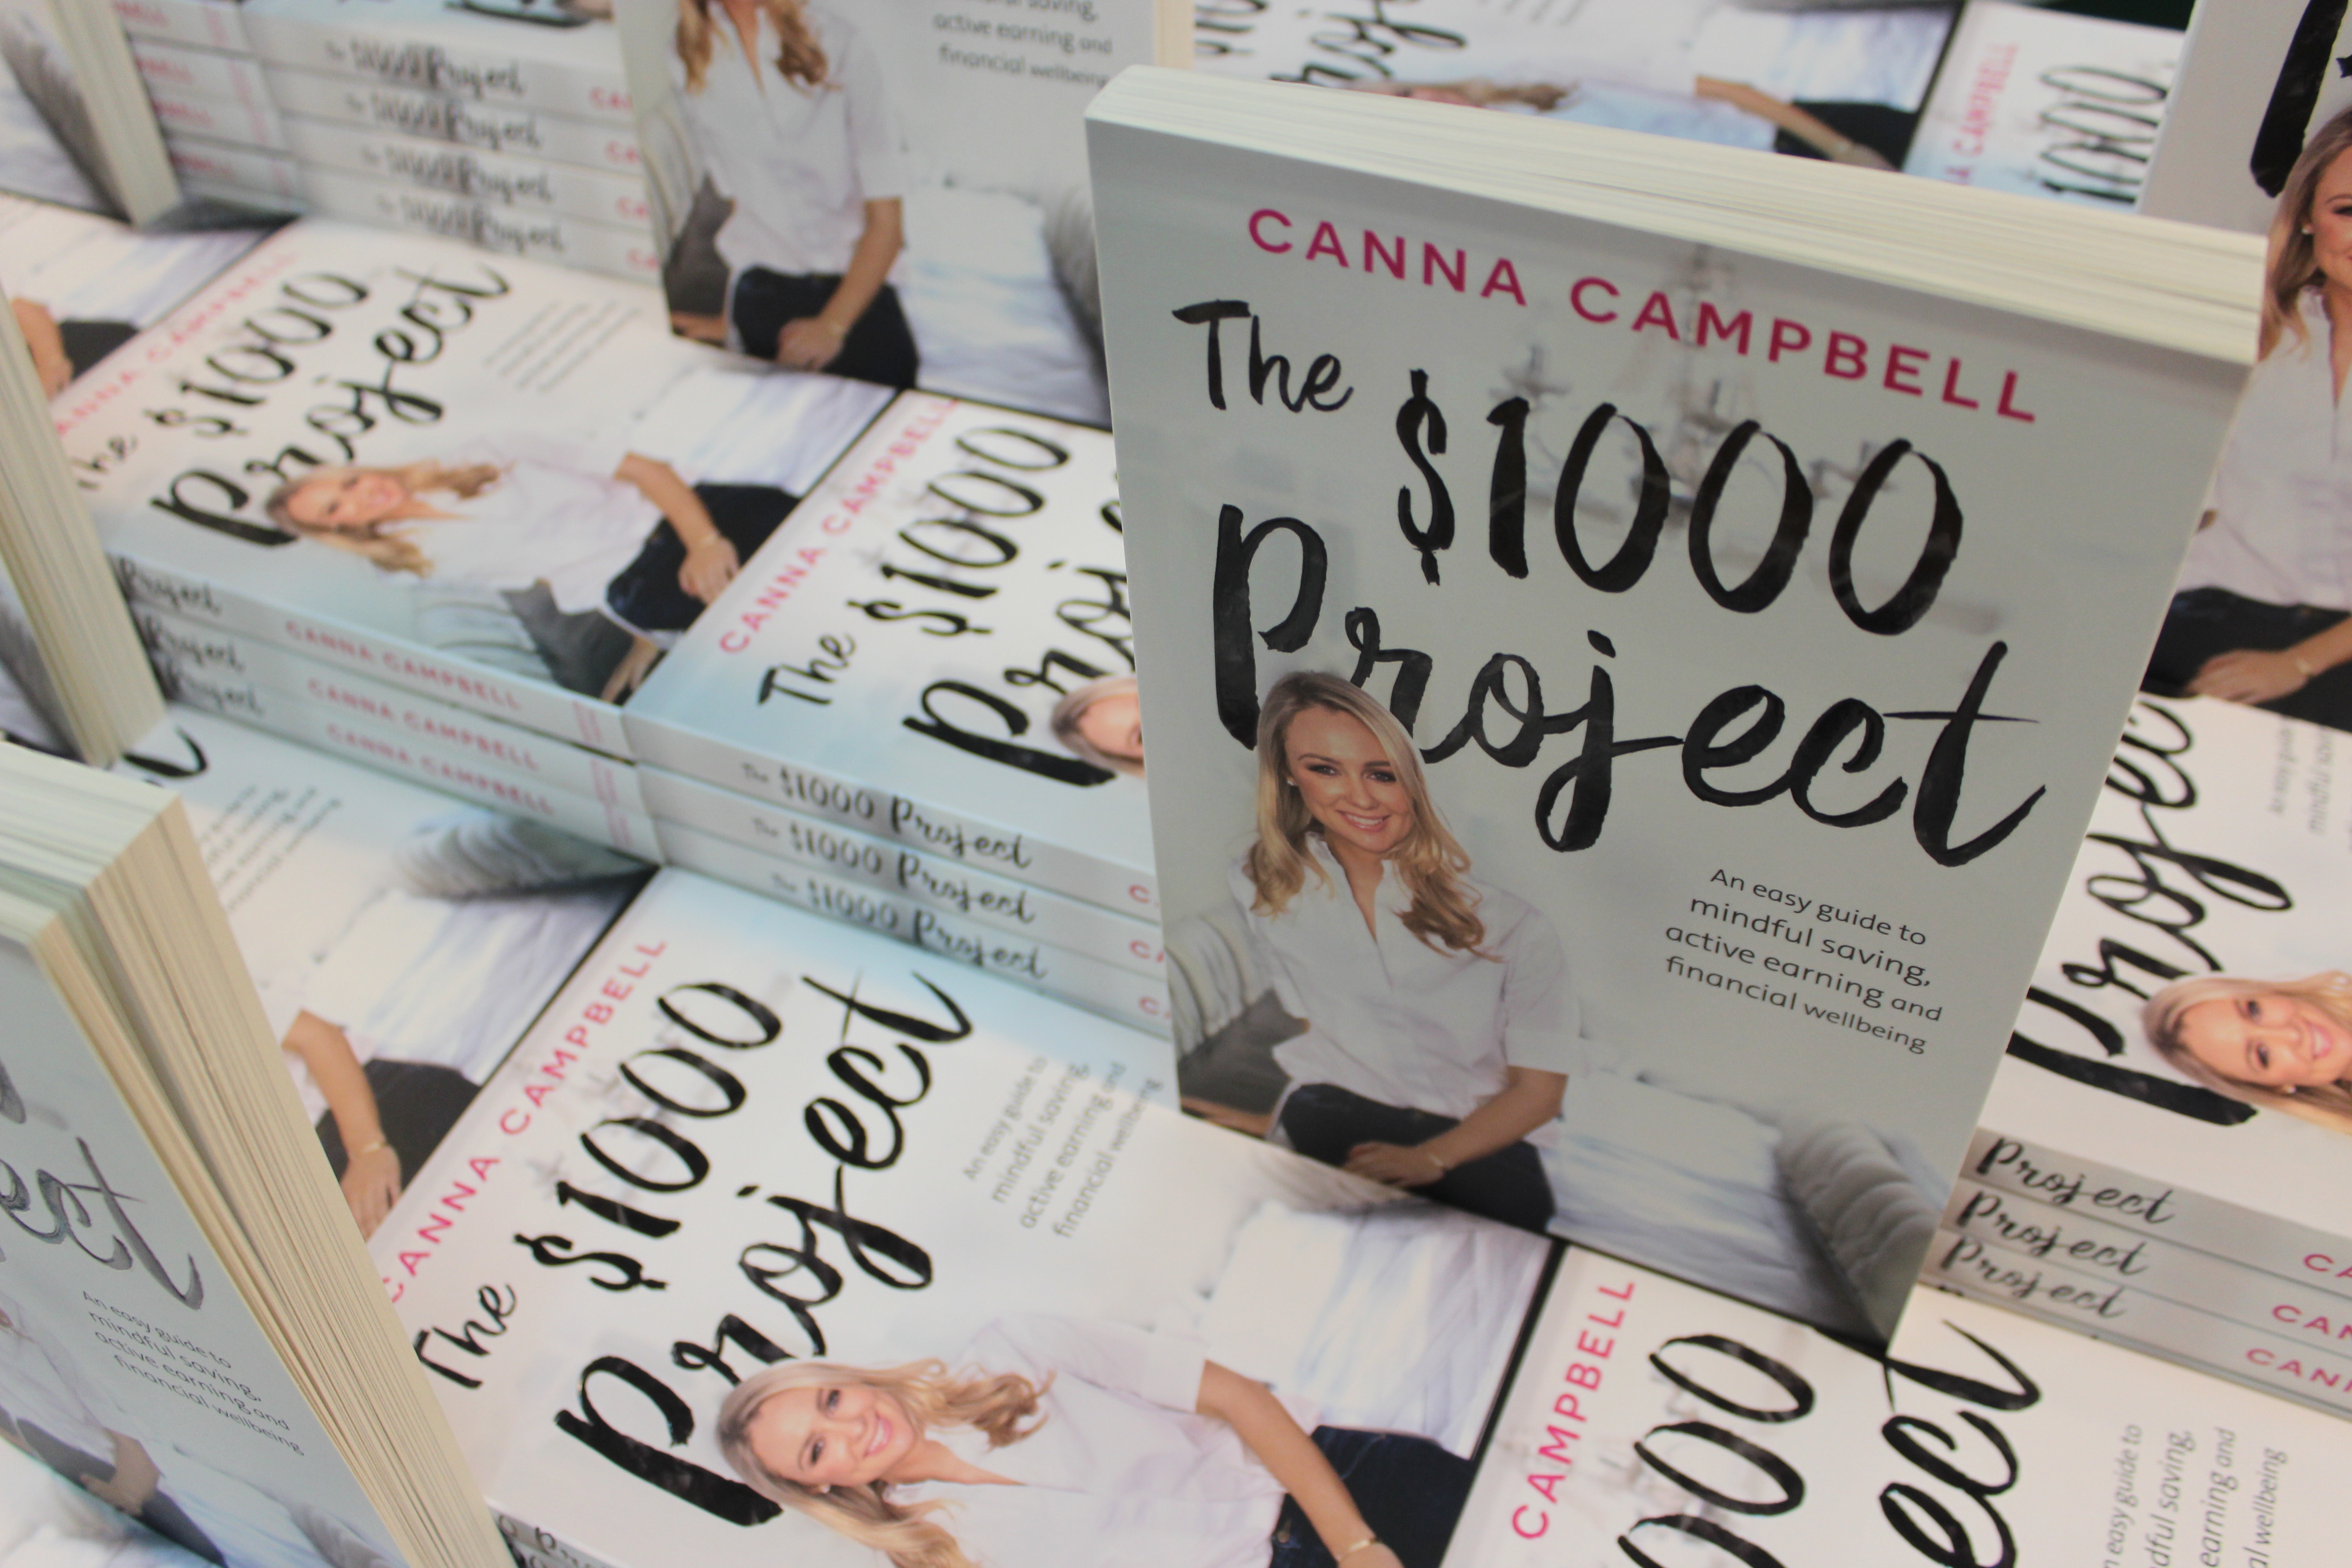 The $1000 Project by Canna Campbell